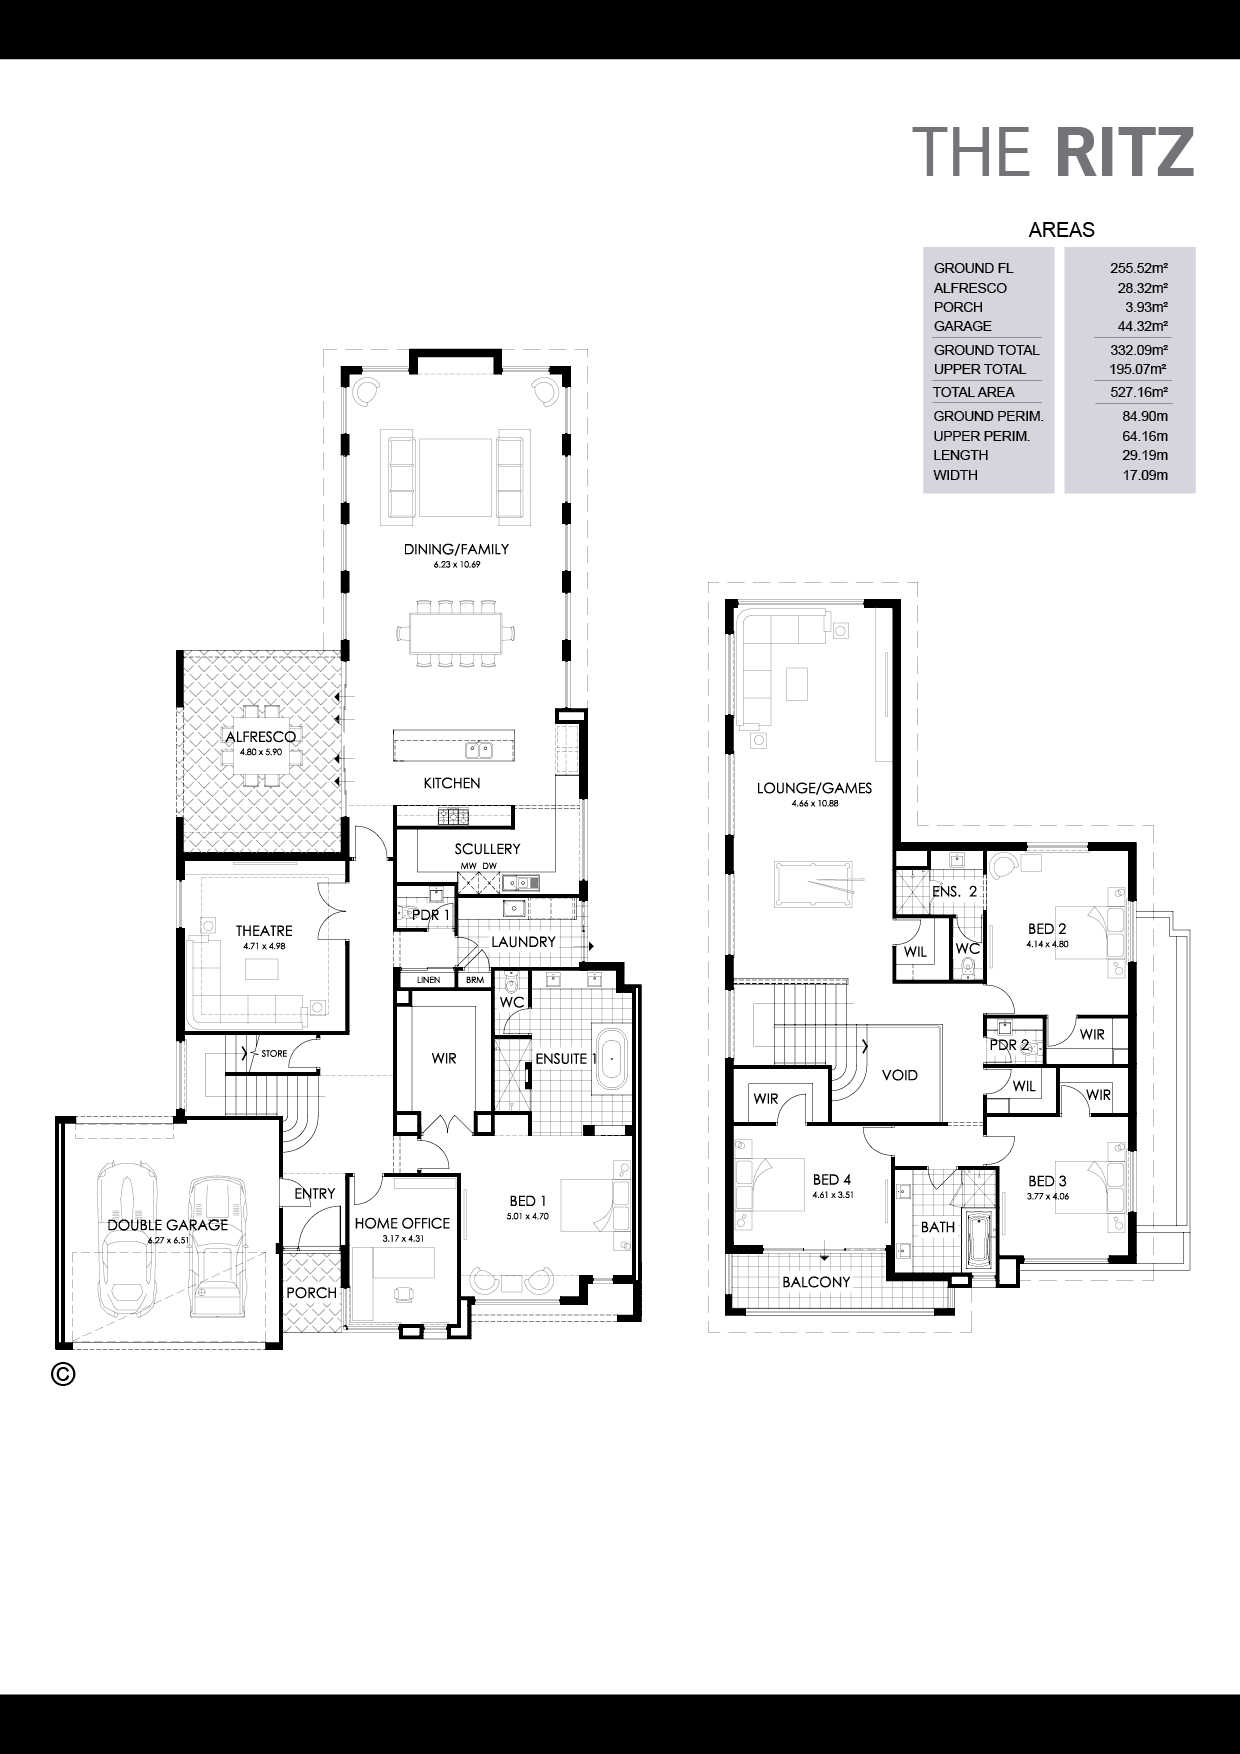 The Ritz Floorplan